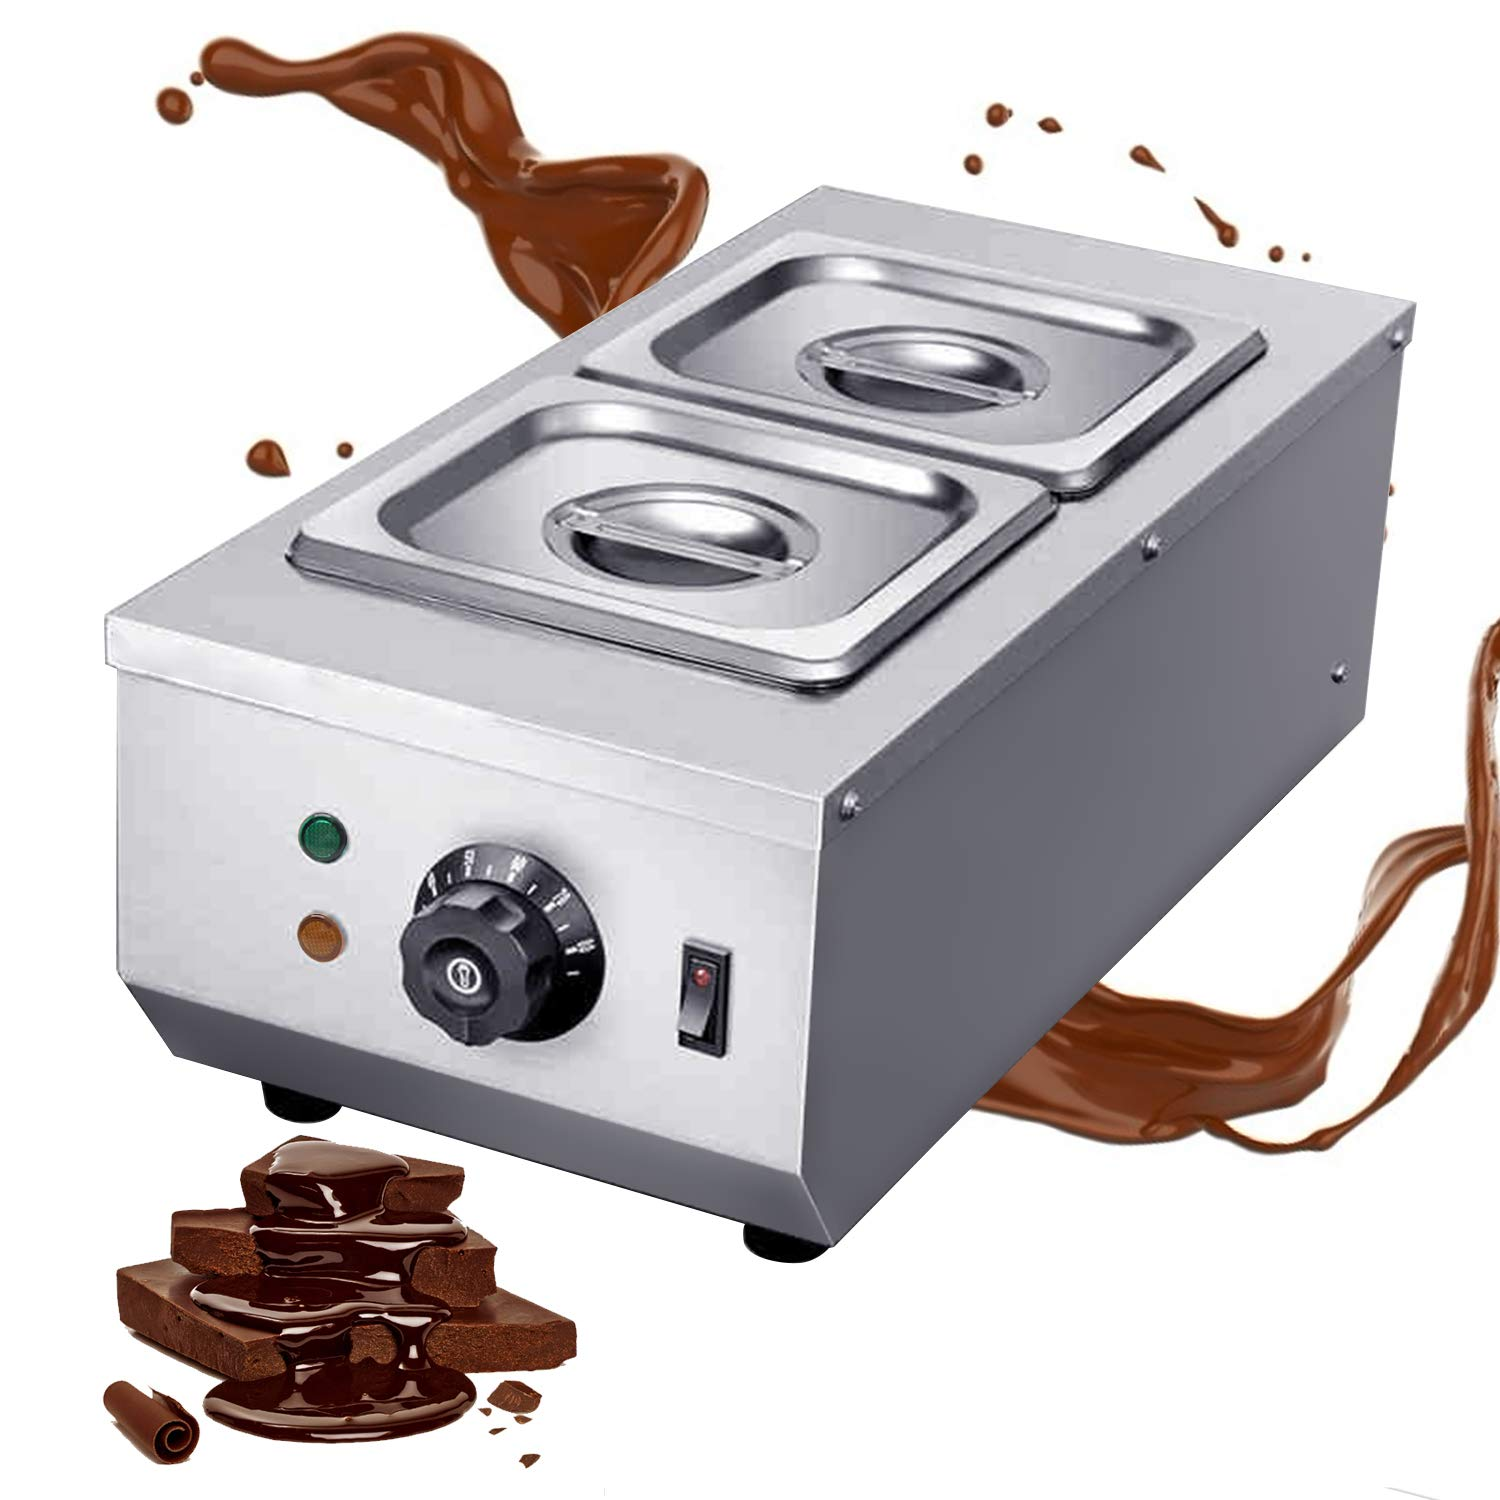 Huanyu Commercial Chocolate Tempering Machine 2 Tanks 9lbs Professional 30~80°C Chocolate Melter Pots Melting Machine Double Cylinder Knob Control (110V)